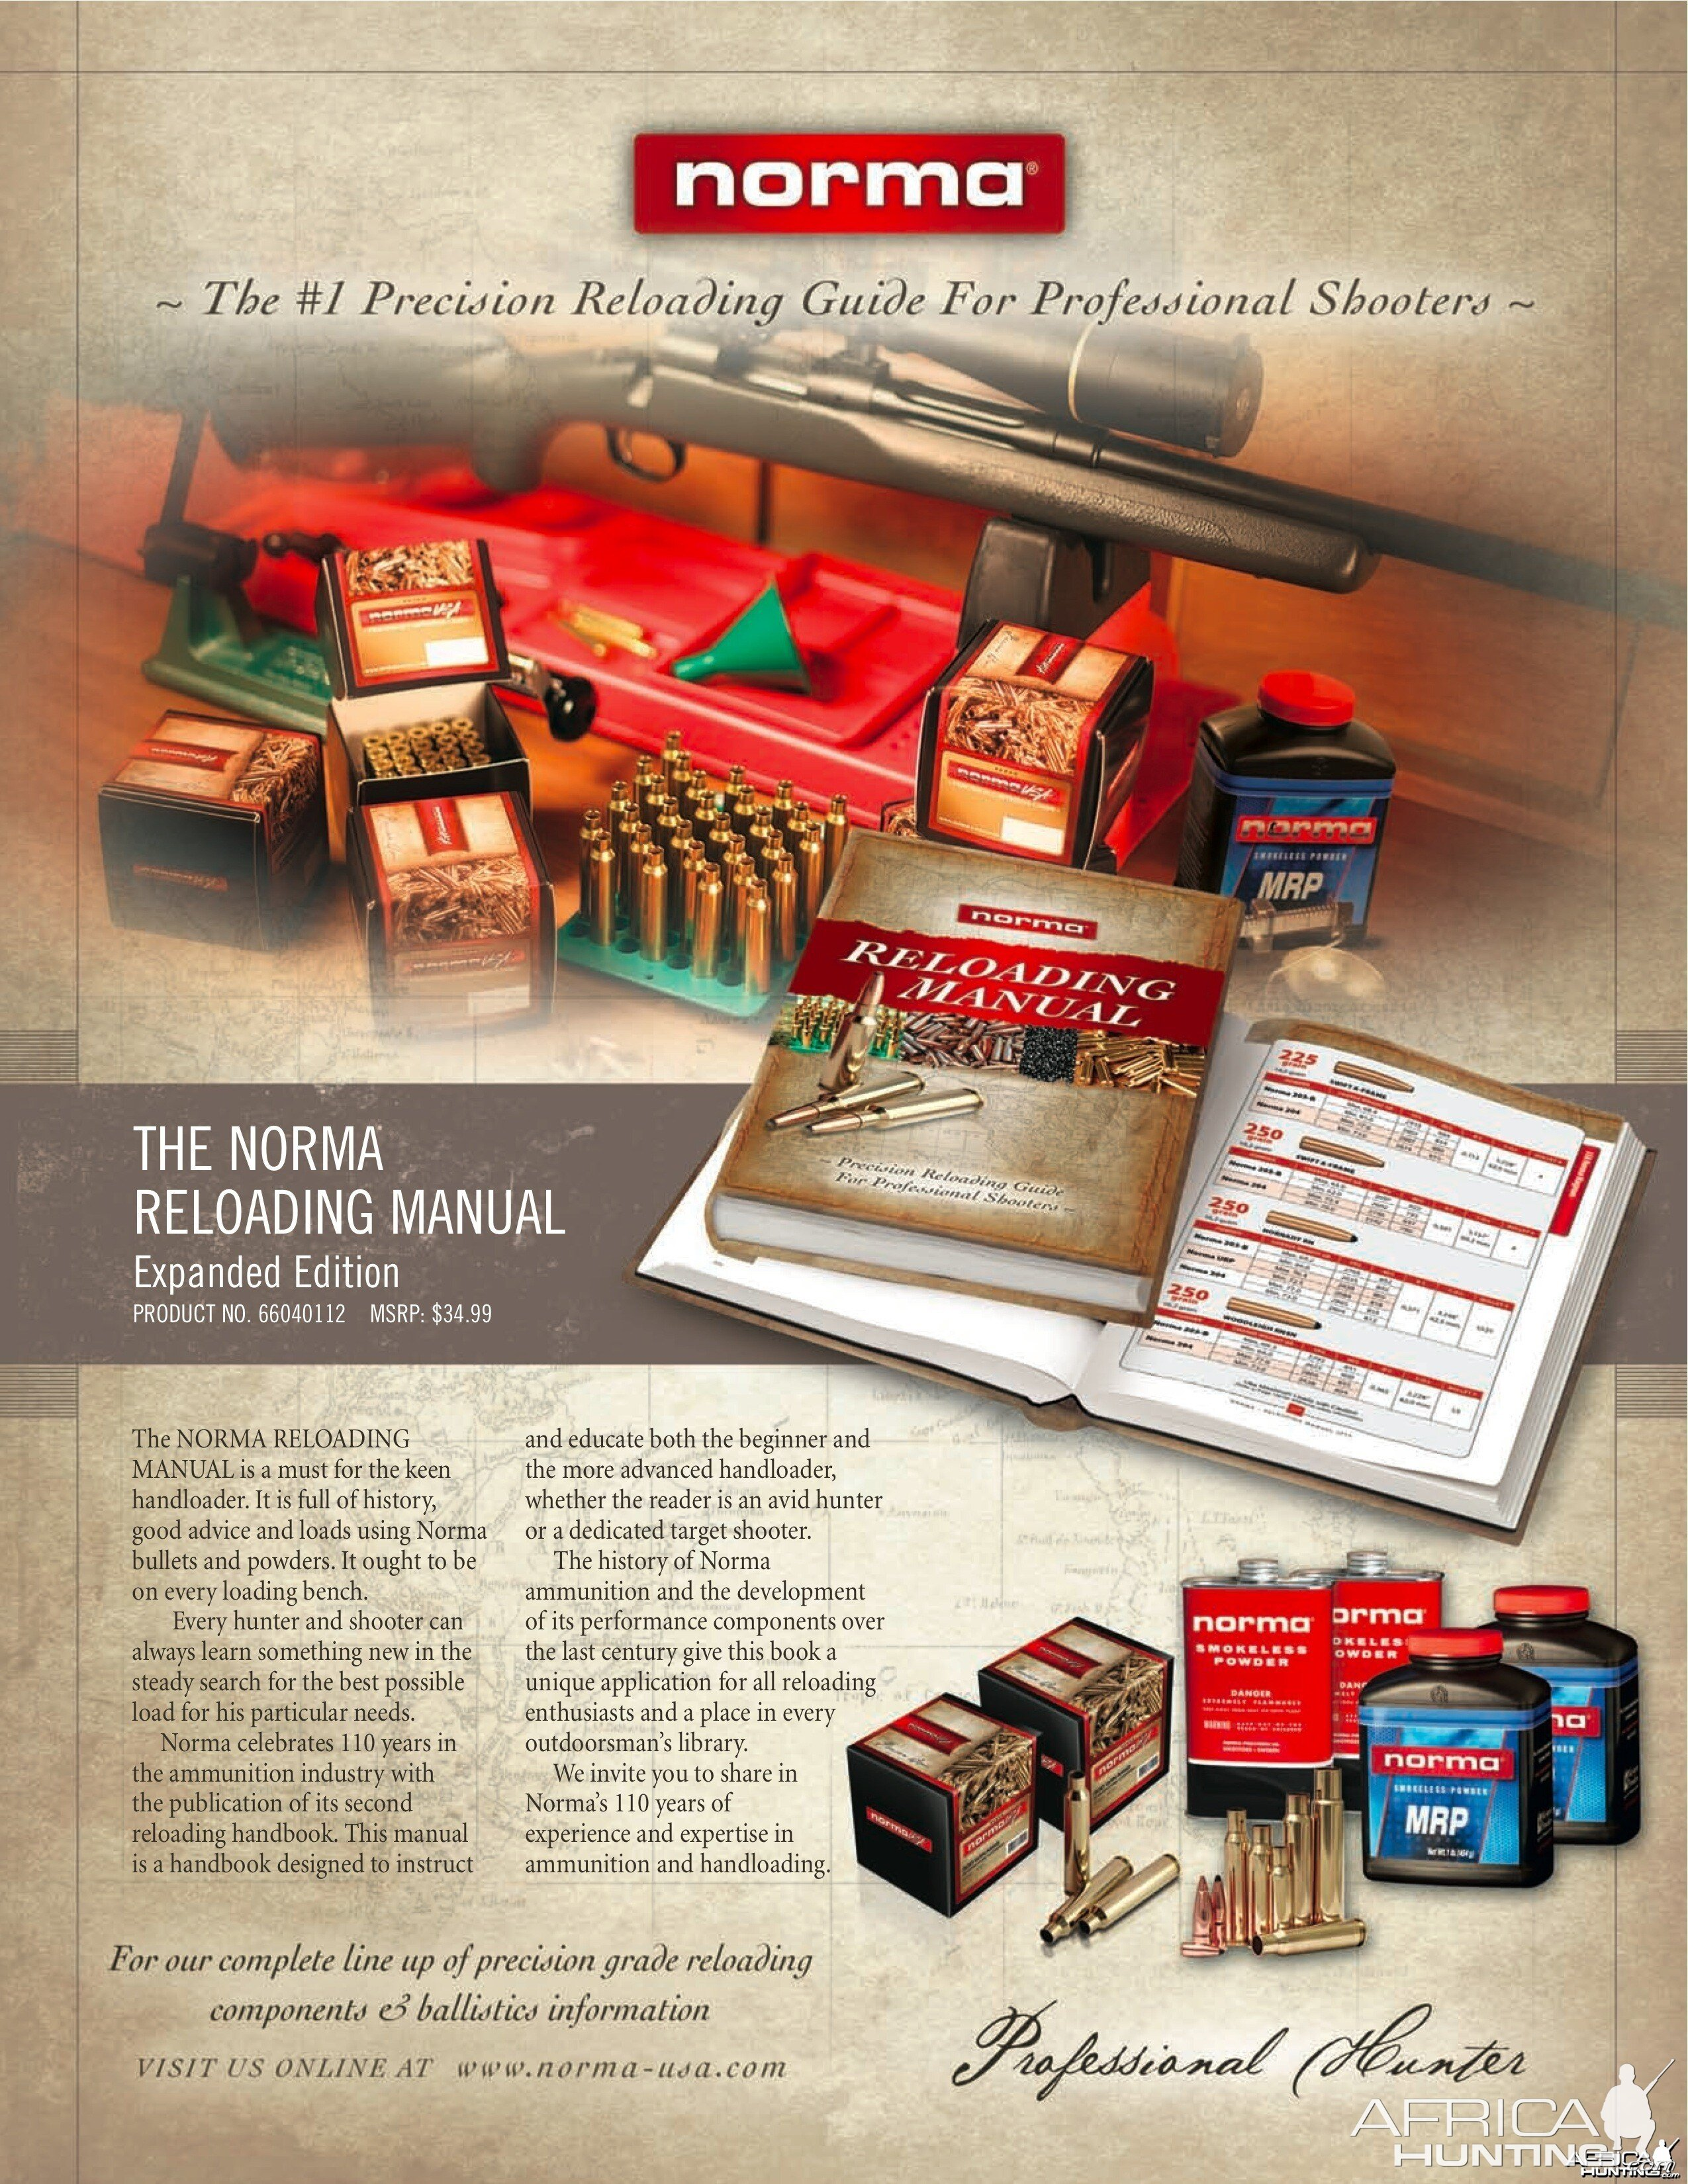 Norma-USA Announces the #1 Precision Reloading Guide   Hunting